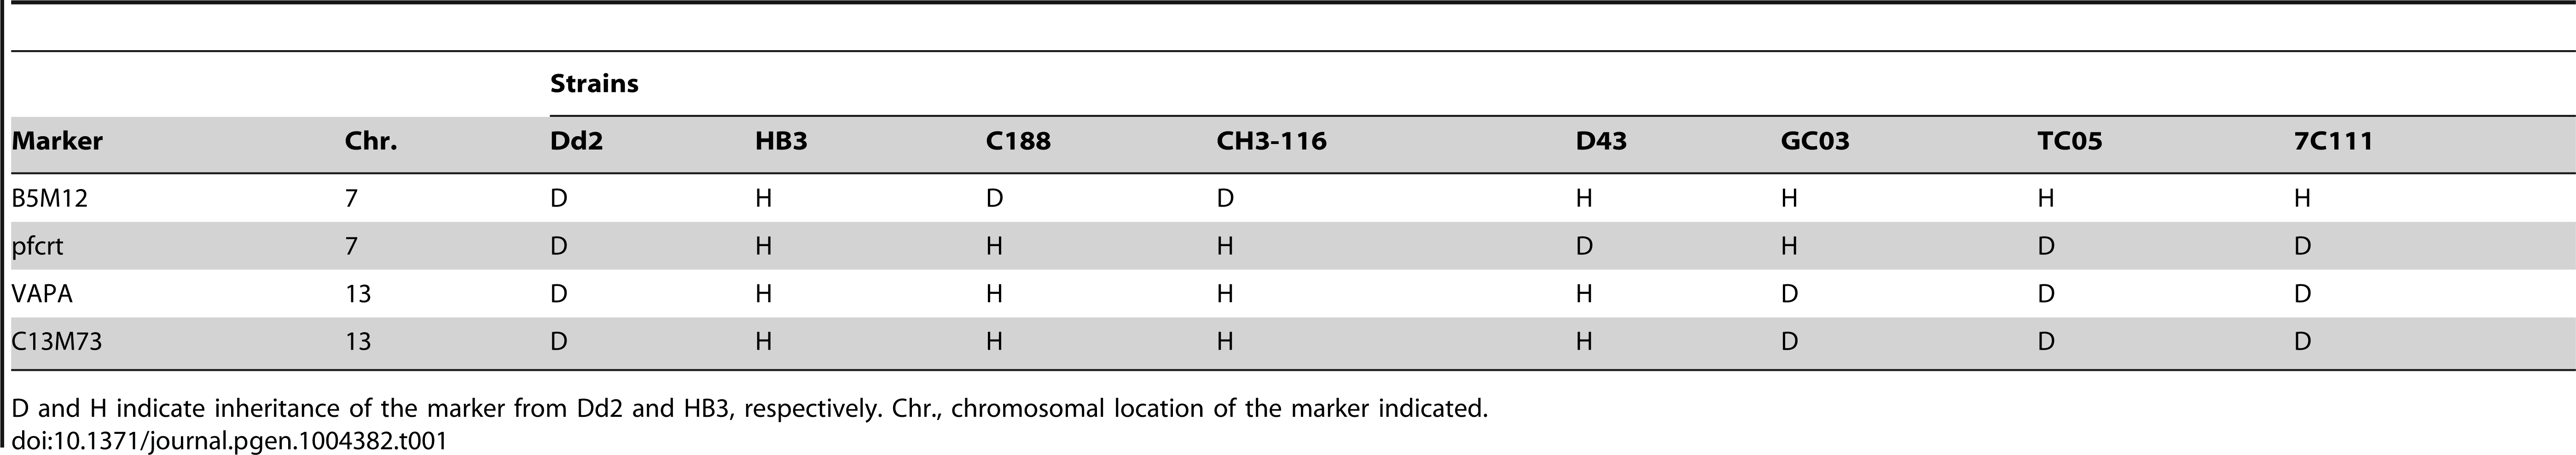 Relevant genotypes of selected progeny and the parental strains Dd2 and HB3.